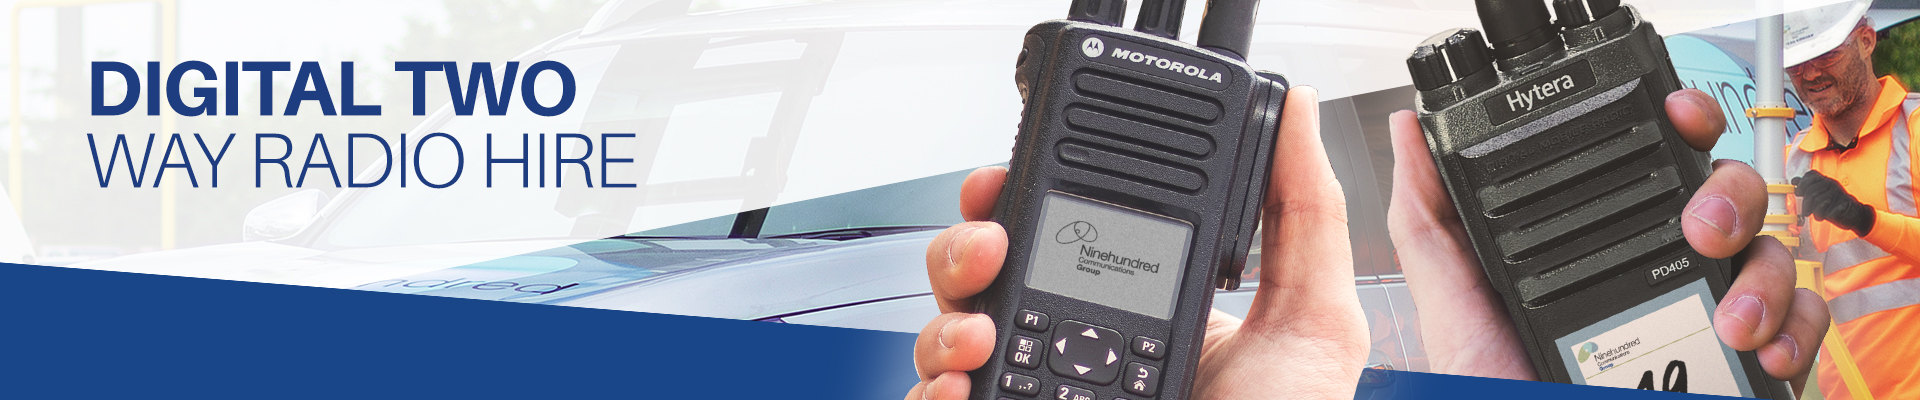 Digital two way radio hire banner image